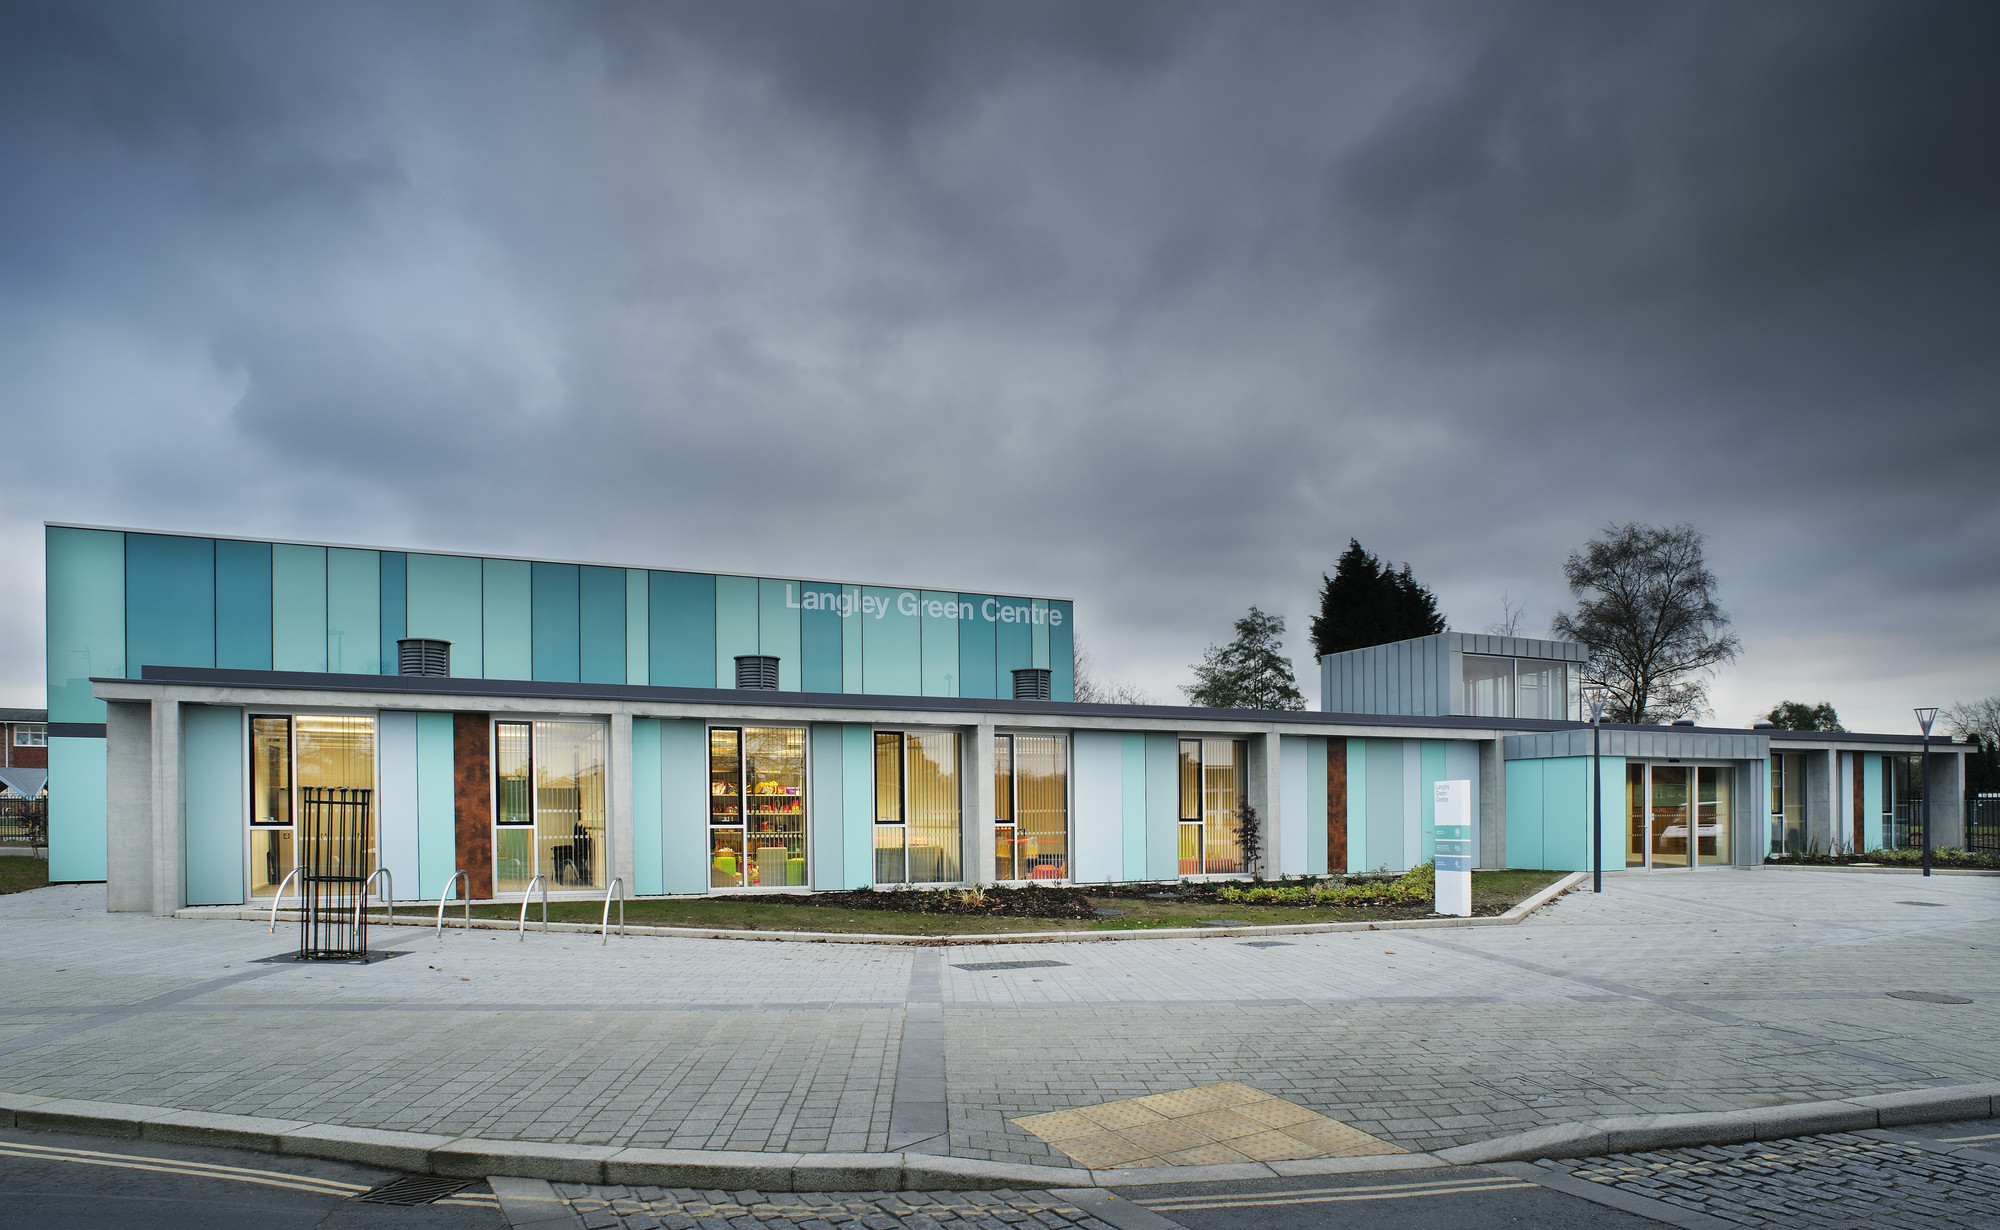 Langley Green Children's Centre / Re-Format, © Nigel Rigden